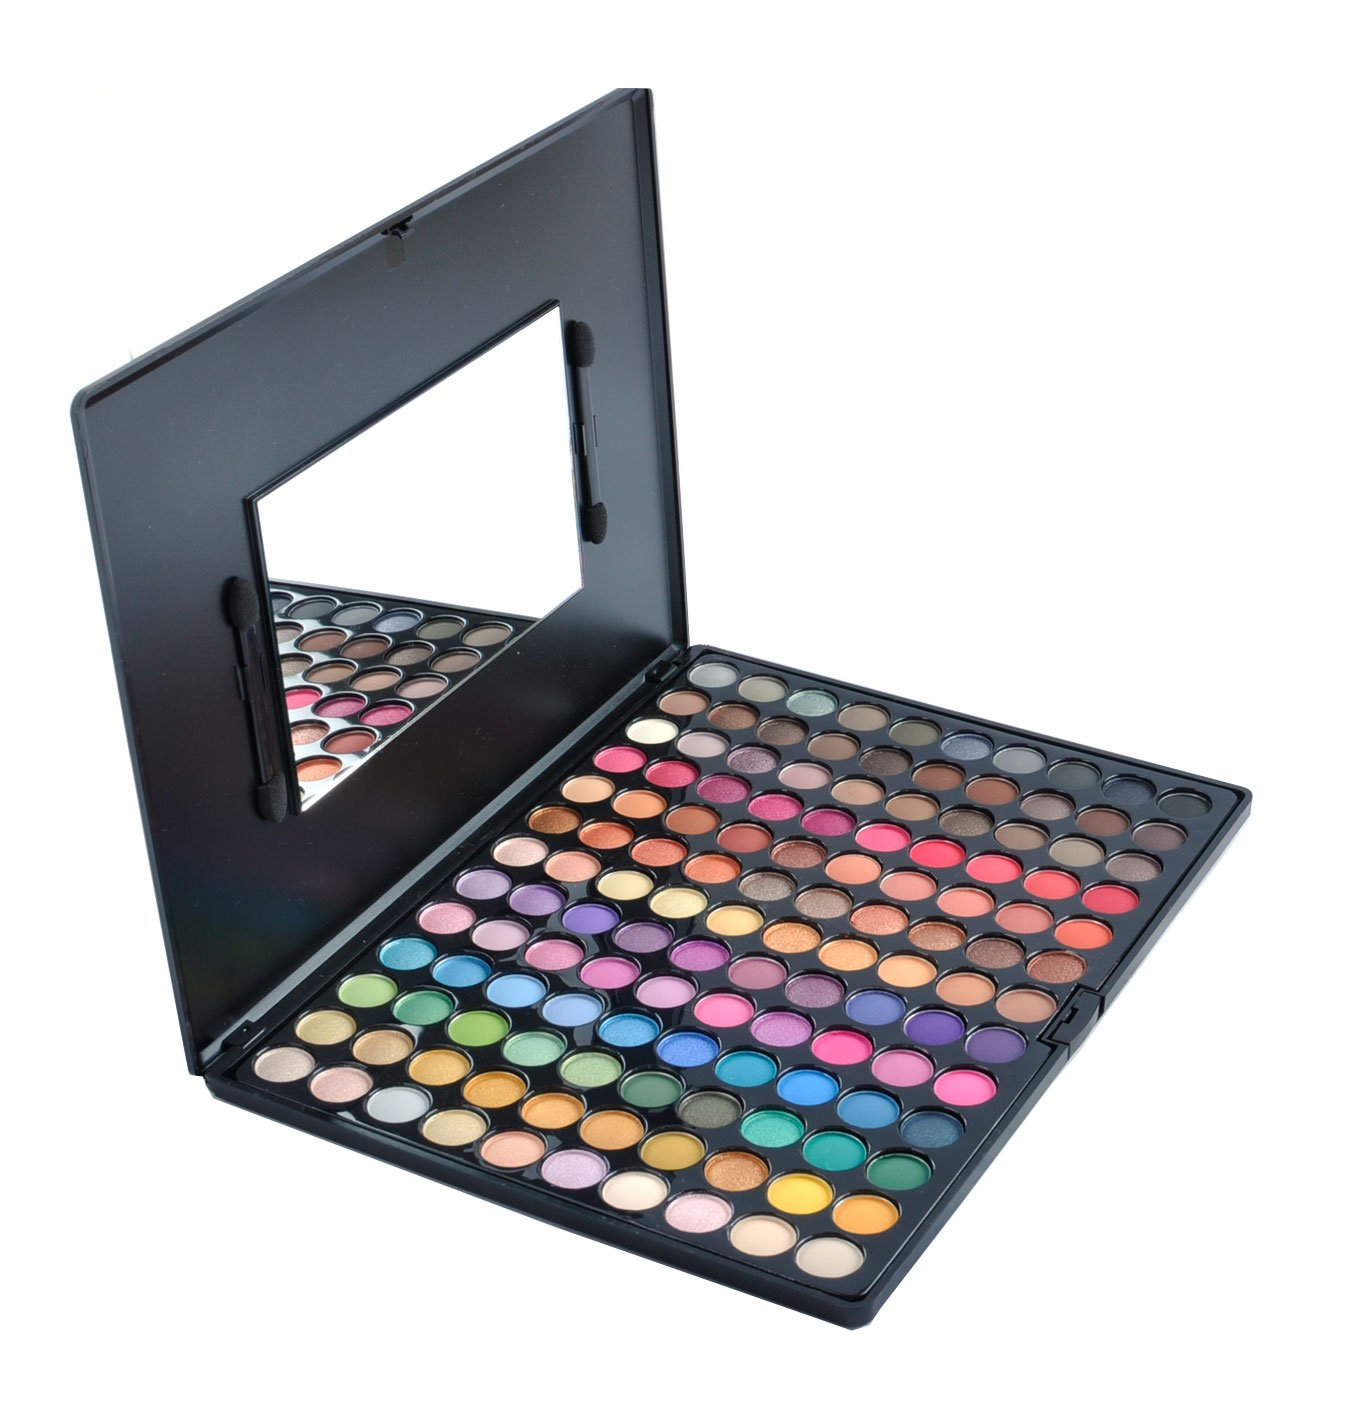 Beauty Treats - 130 Colors Professional Makeup Eye Shadow Palette